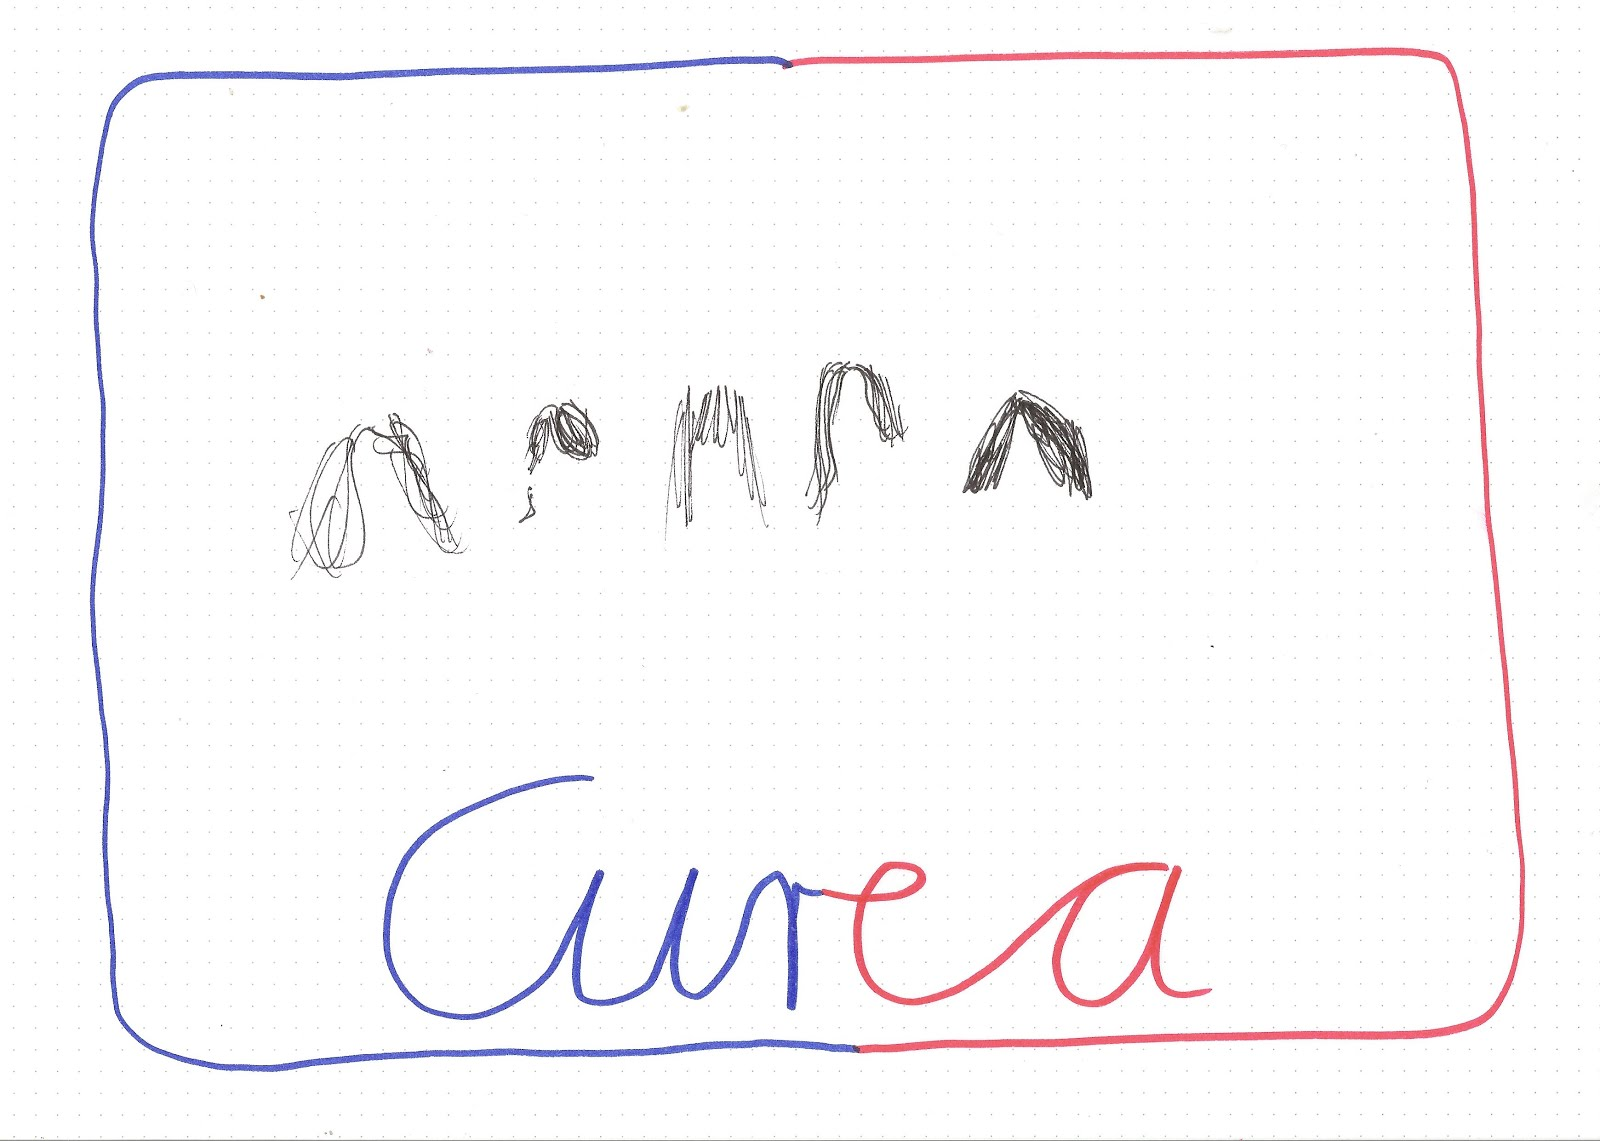 Team CUREA